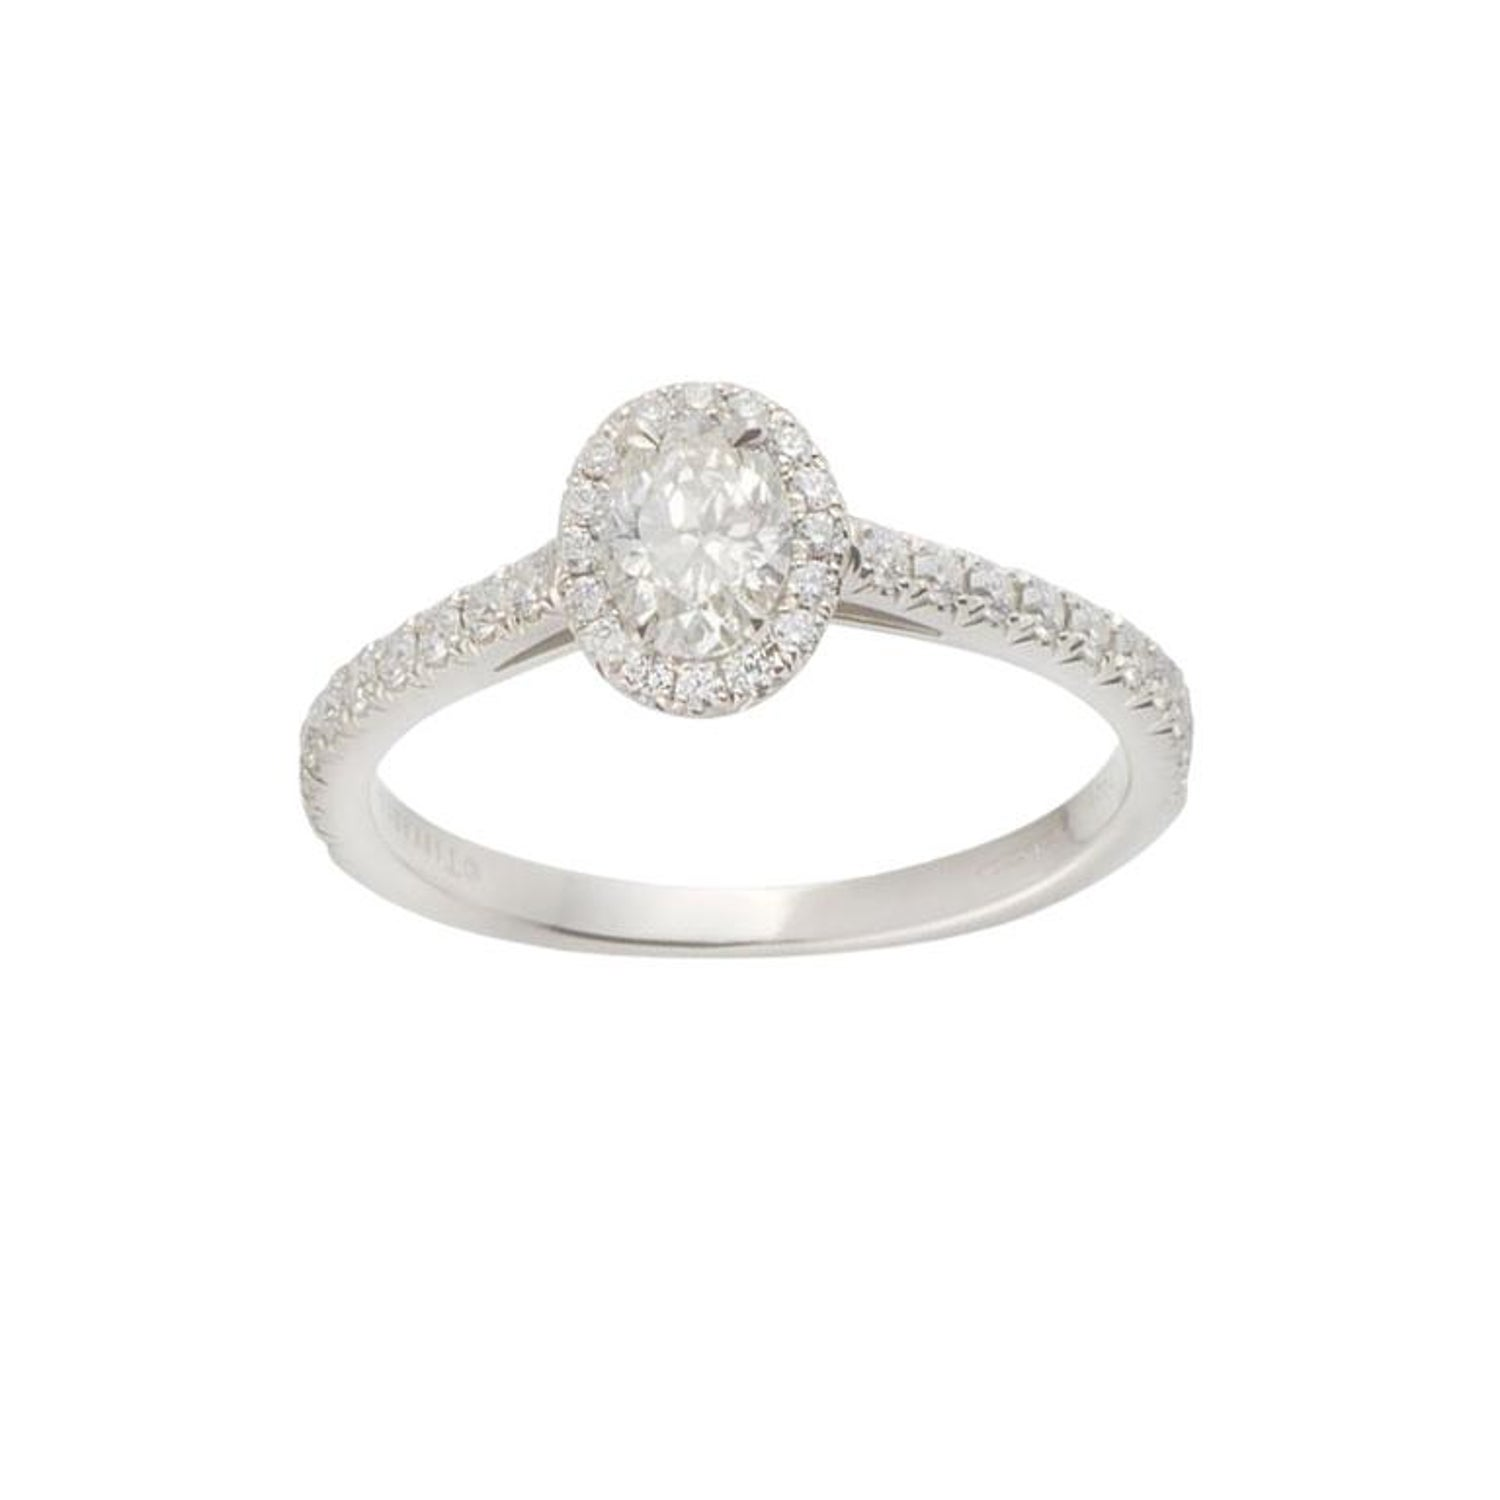 f0acae938 Tiffany and Co. Soleste Oval Diamond Engagement Ring in Platinum For Sale  at 1stdibs